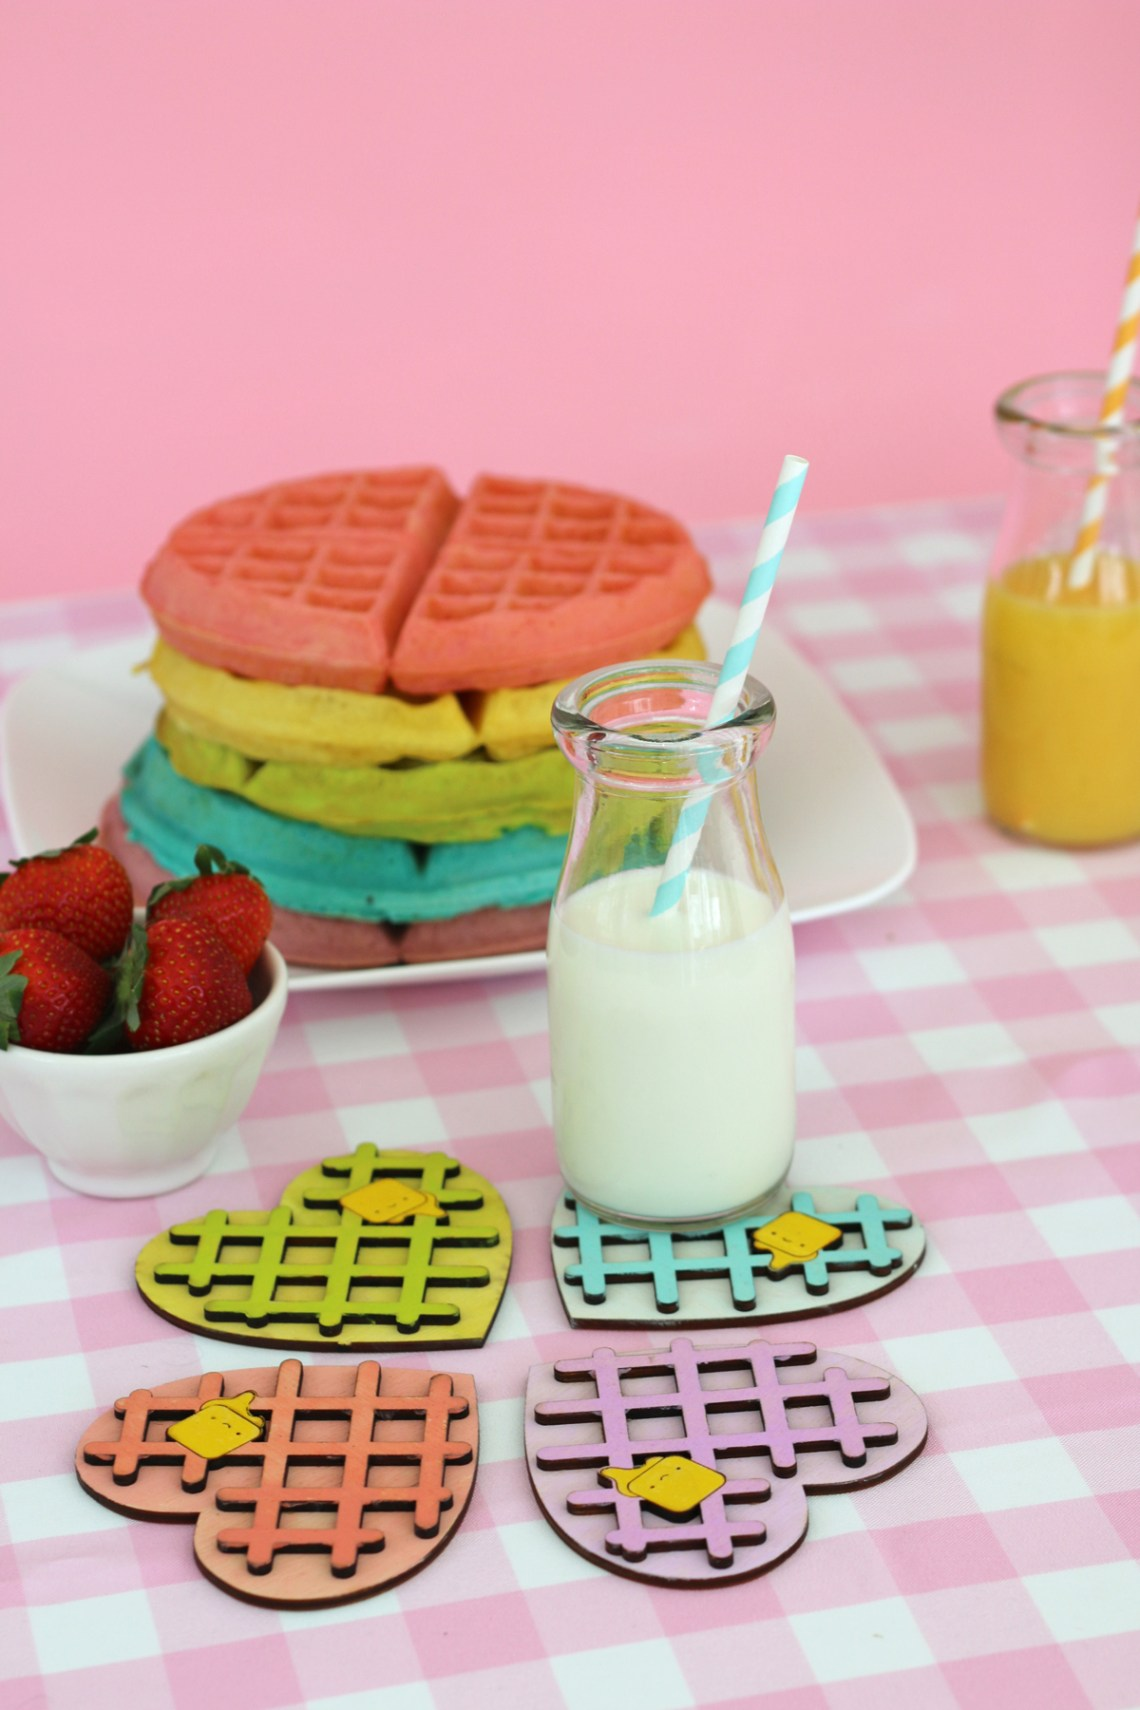 Kawaii Heart Shaped waffle coaster set with rainbow waffle stack. So cute